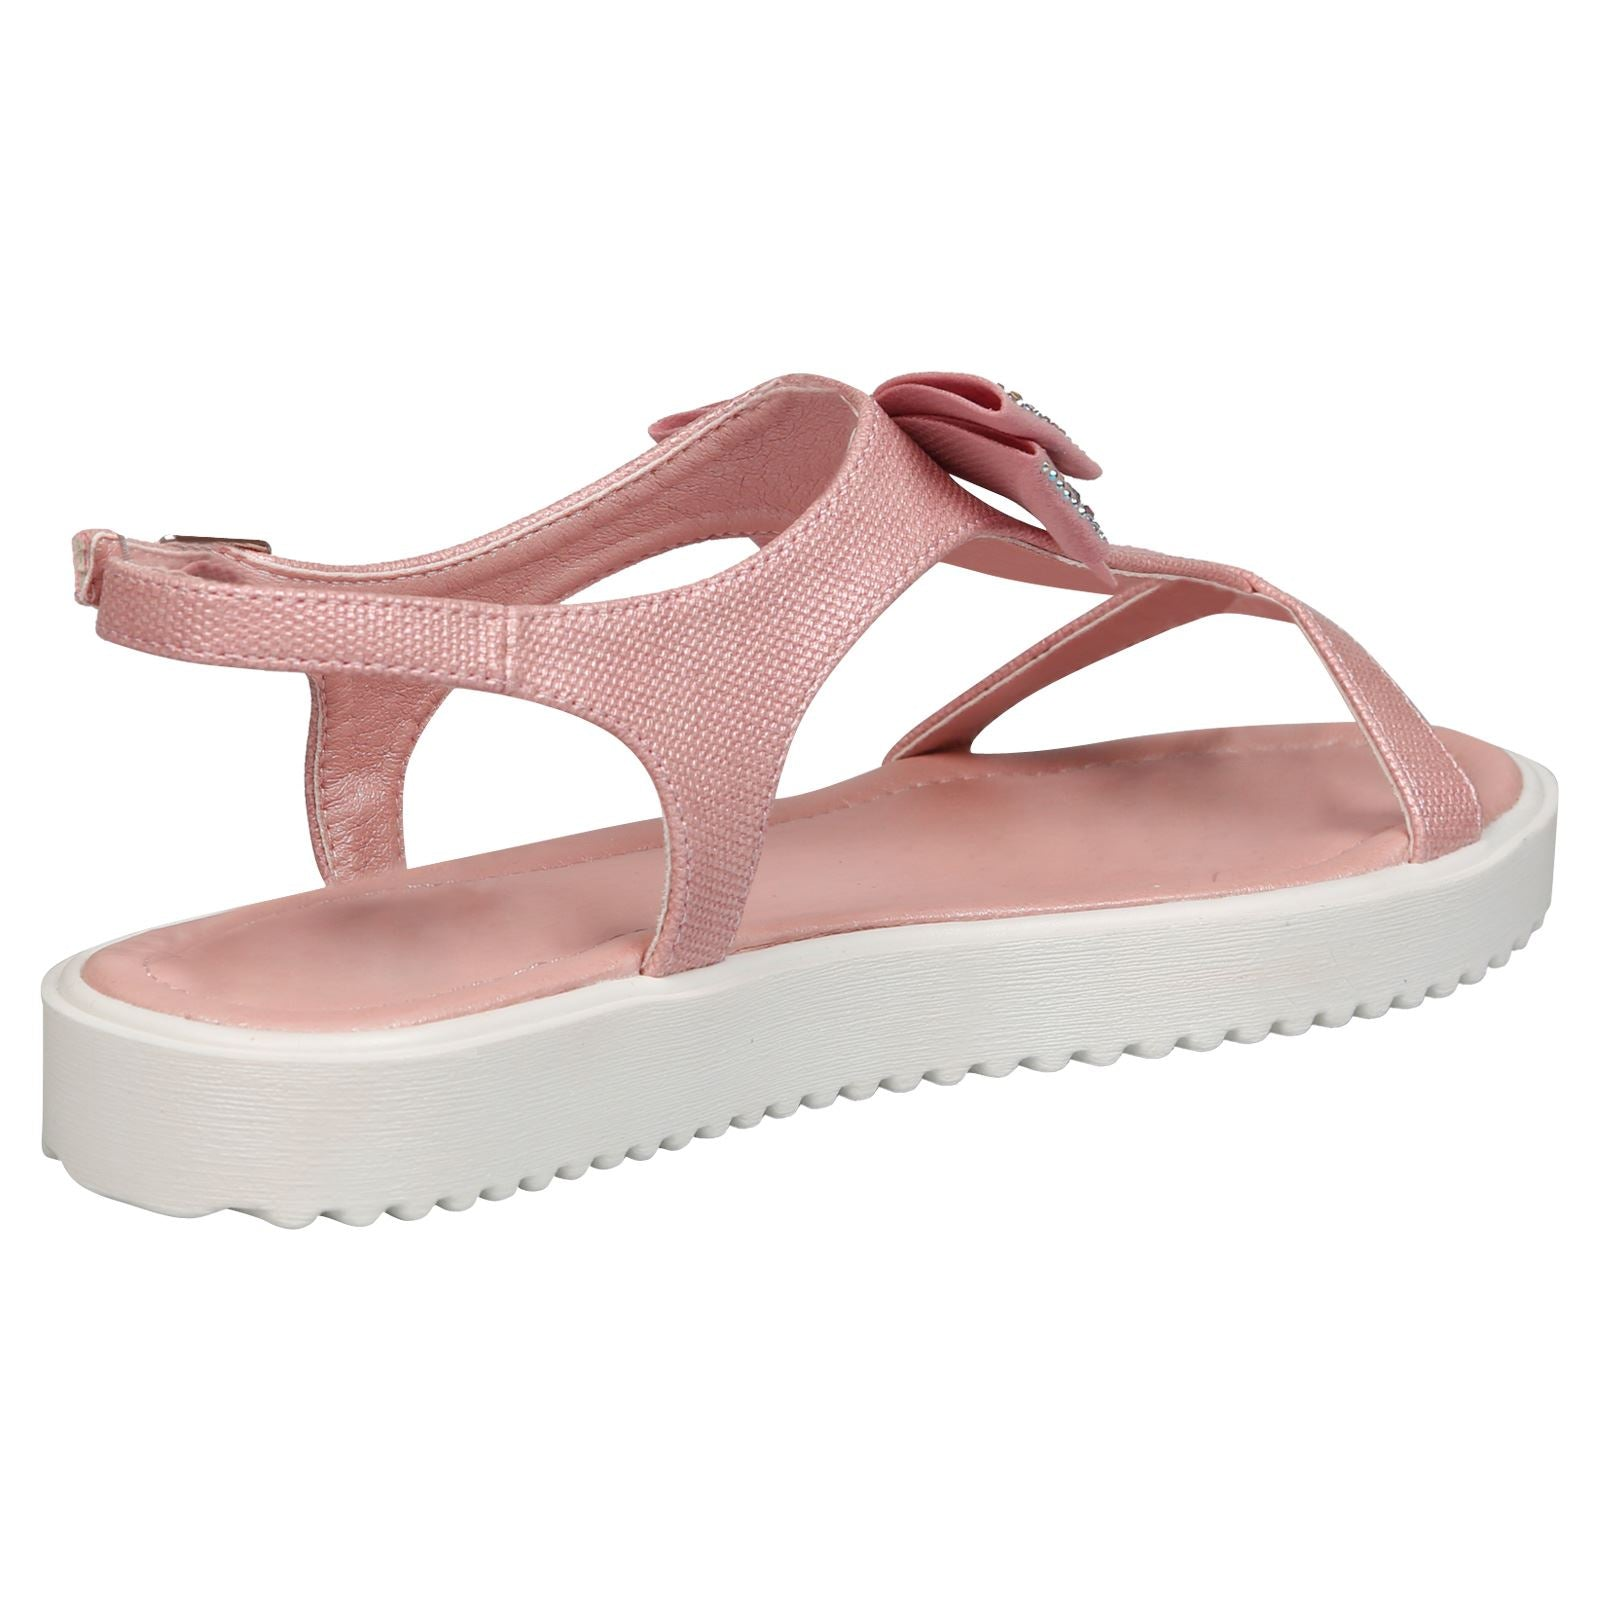 Shannon Girls Textured T-Bar Bow Sandals in Pink - Feet First Fashion